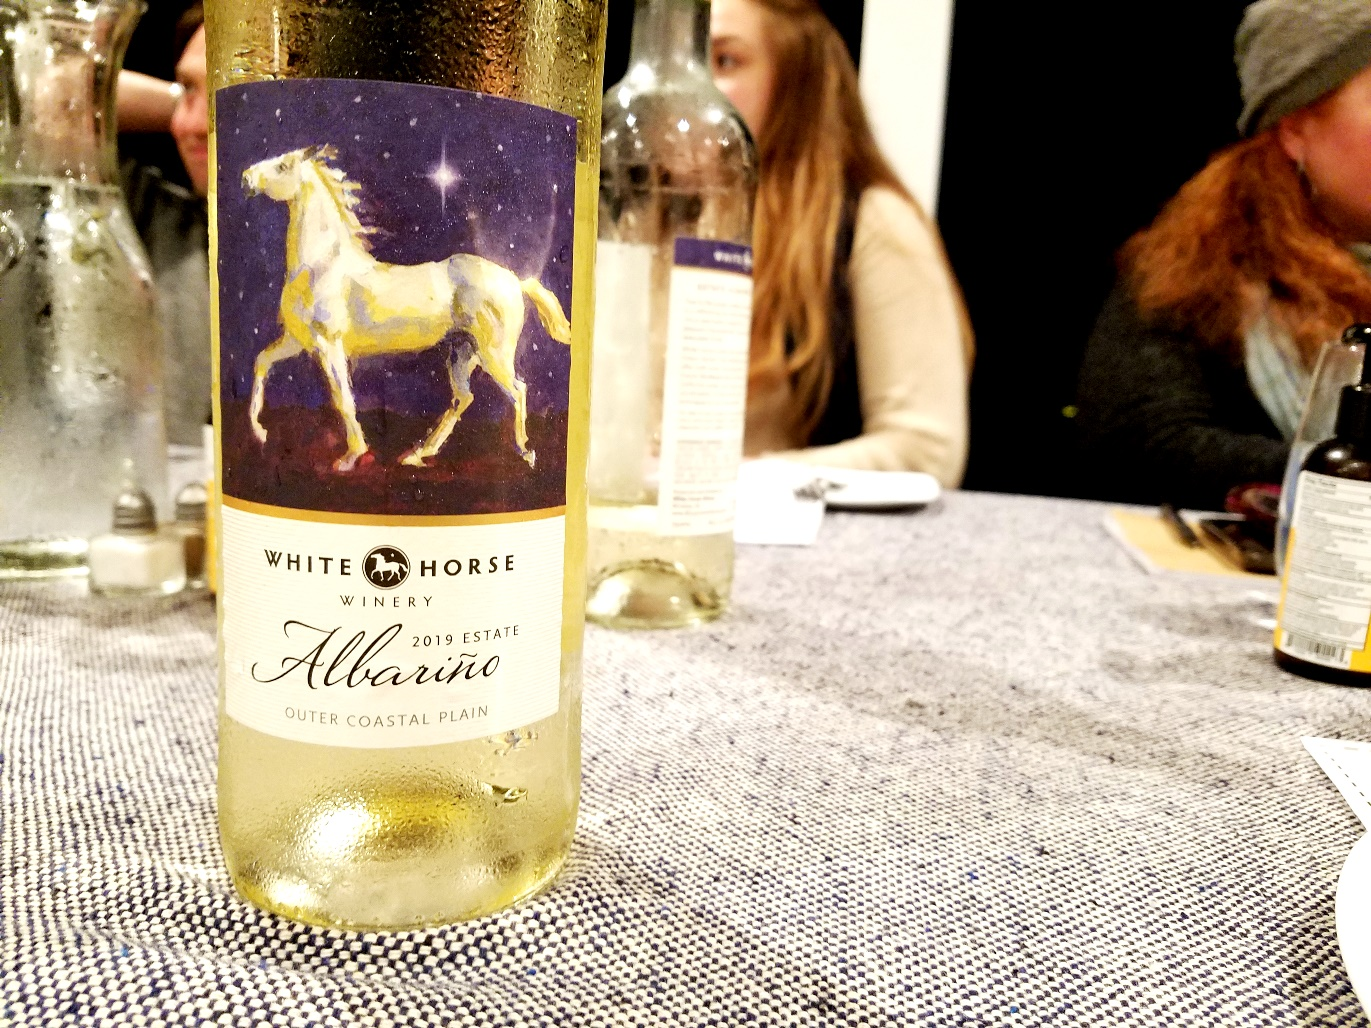 White Horse Winery, Estate Albariño 2019, Outer Coastal Plain, New Jersey, Wine Casual